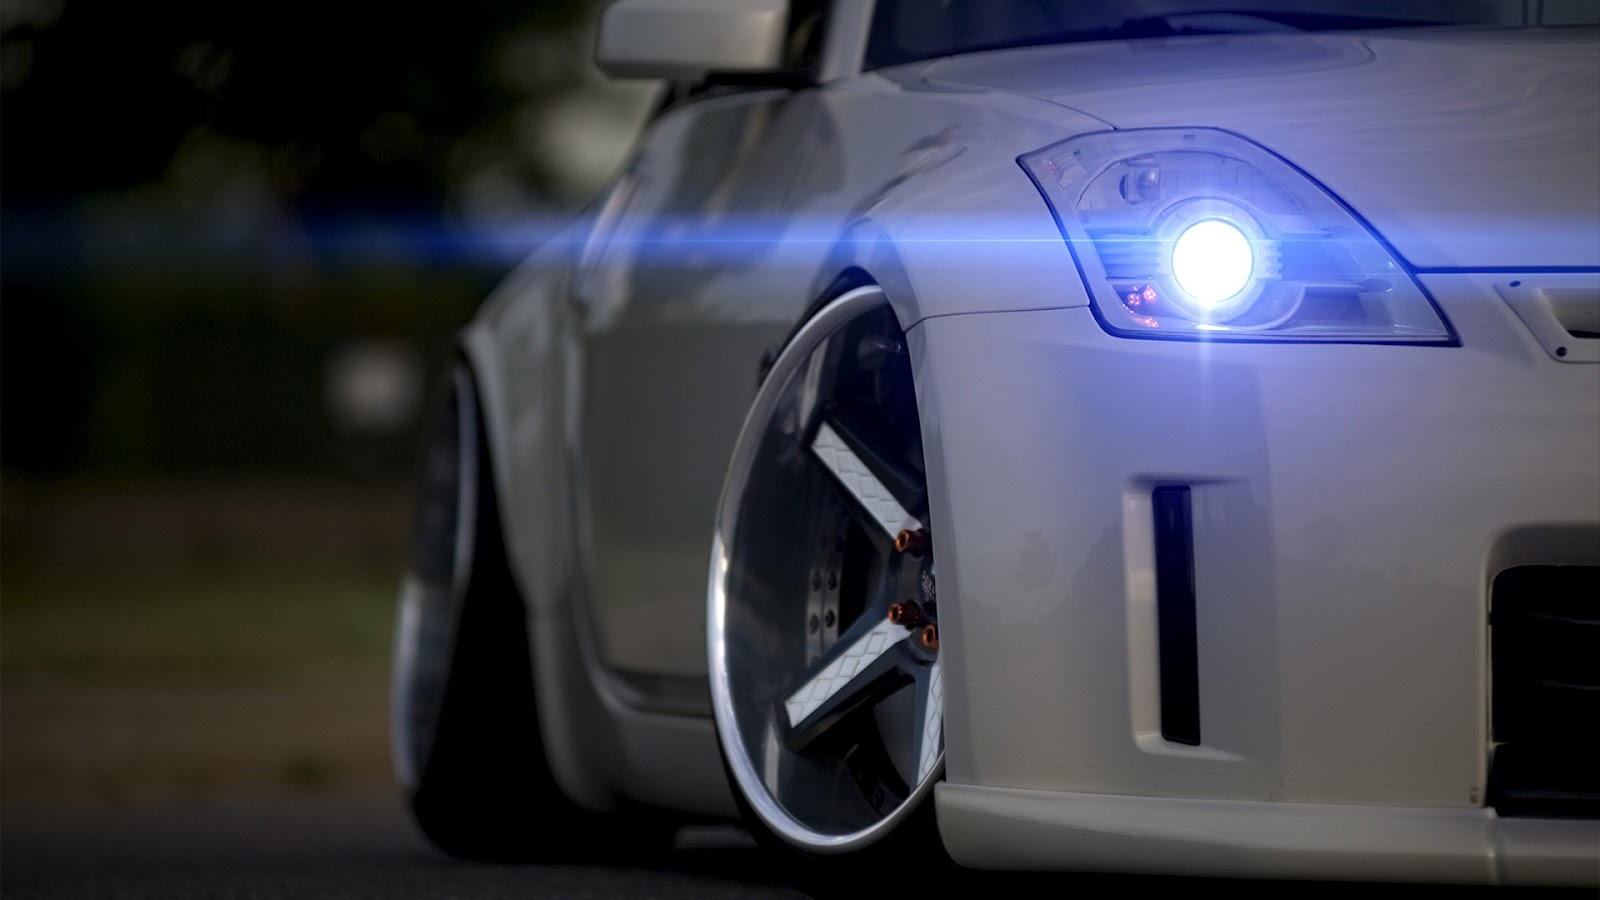 19 Awesome HD Headlights Wallpapers